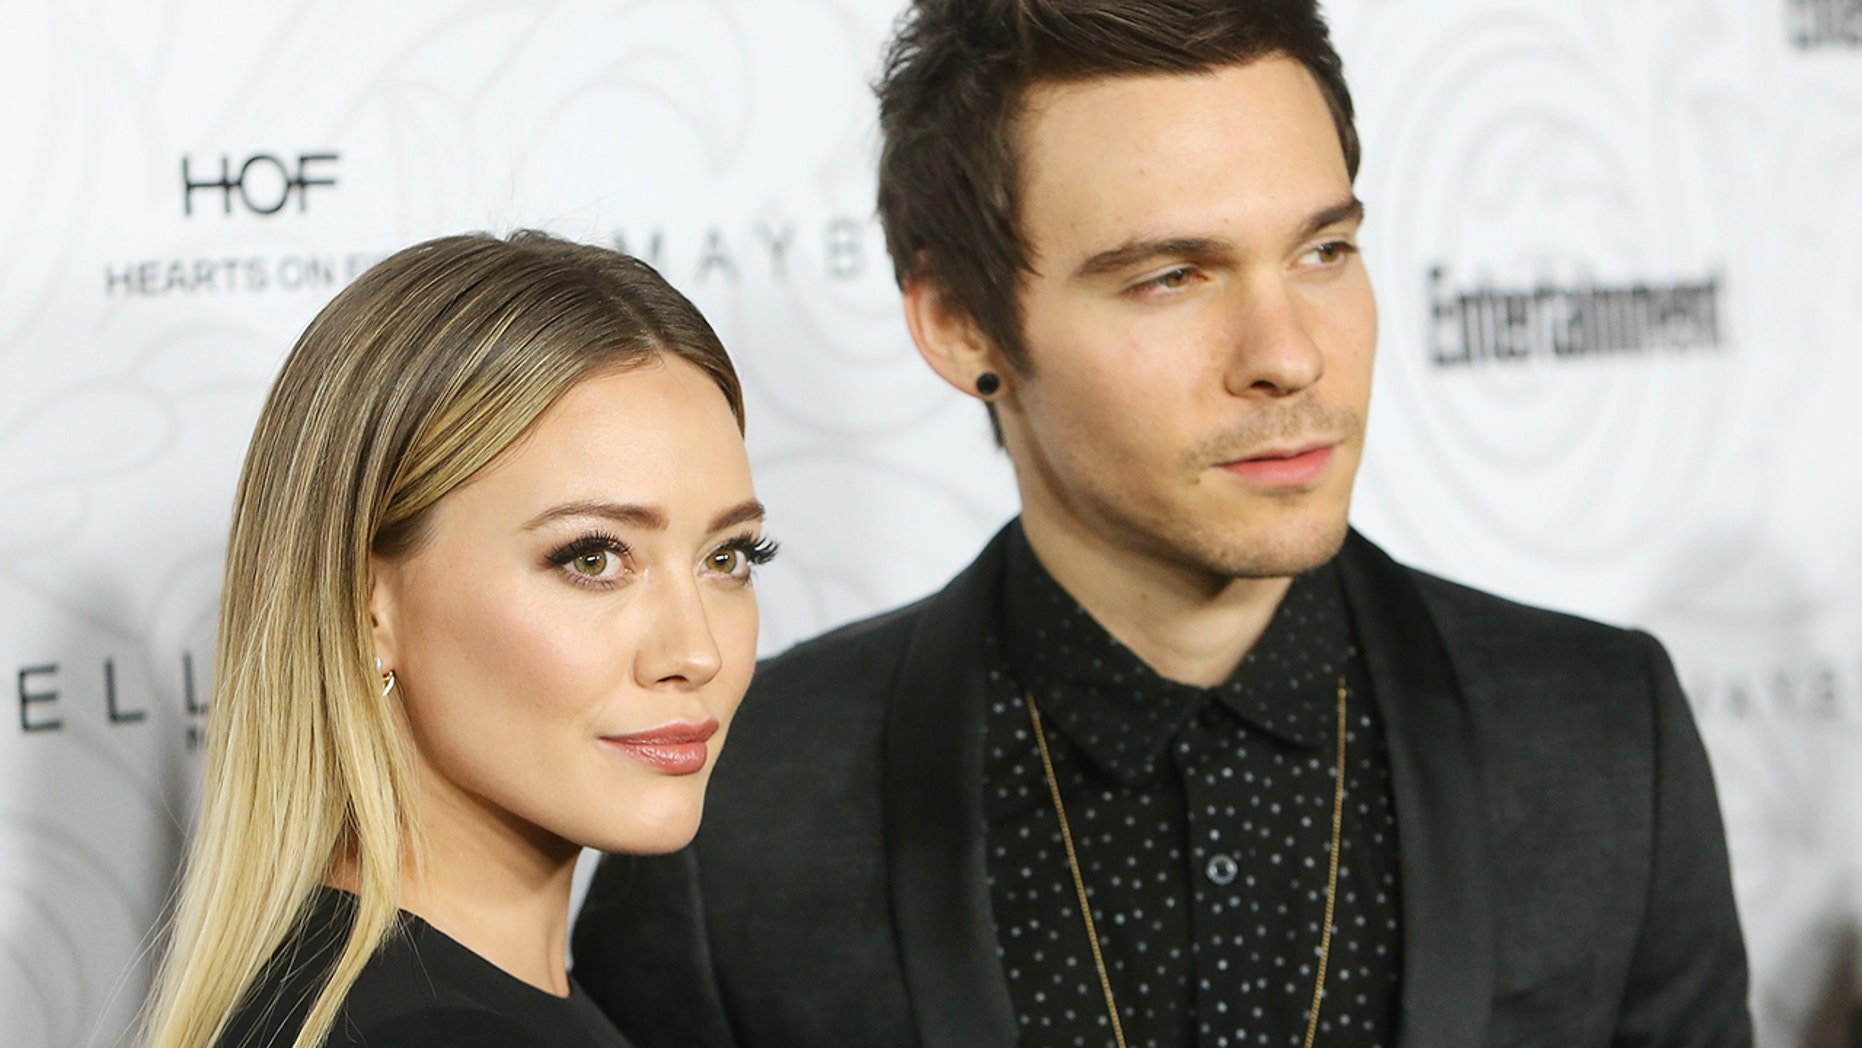 Hilary Duff and Matthew Koma arrive at the Entertainment Weekly hosts celebration honoring nominees for The Screen Actors Guild Awards held at Chateau Marmont on January 28, 2017 in Los Angeles, California.